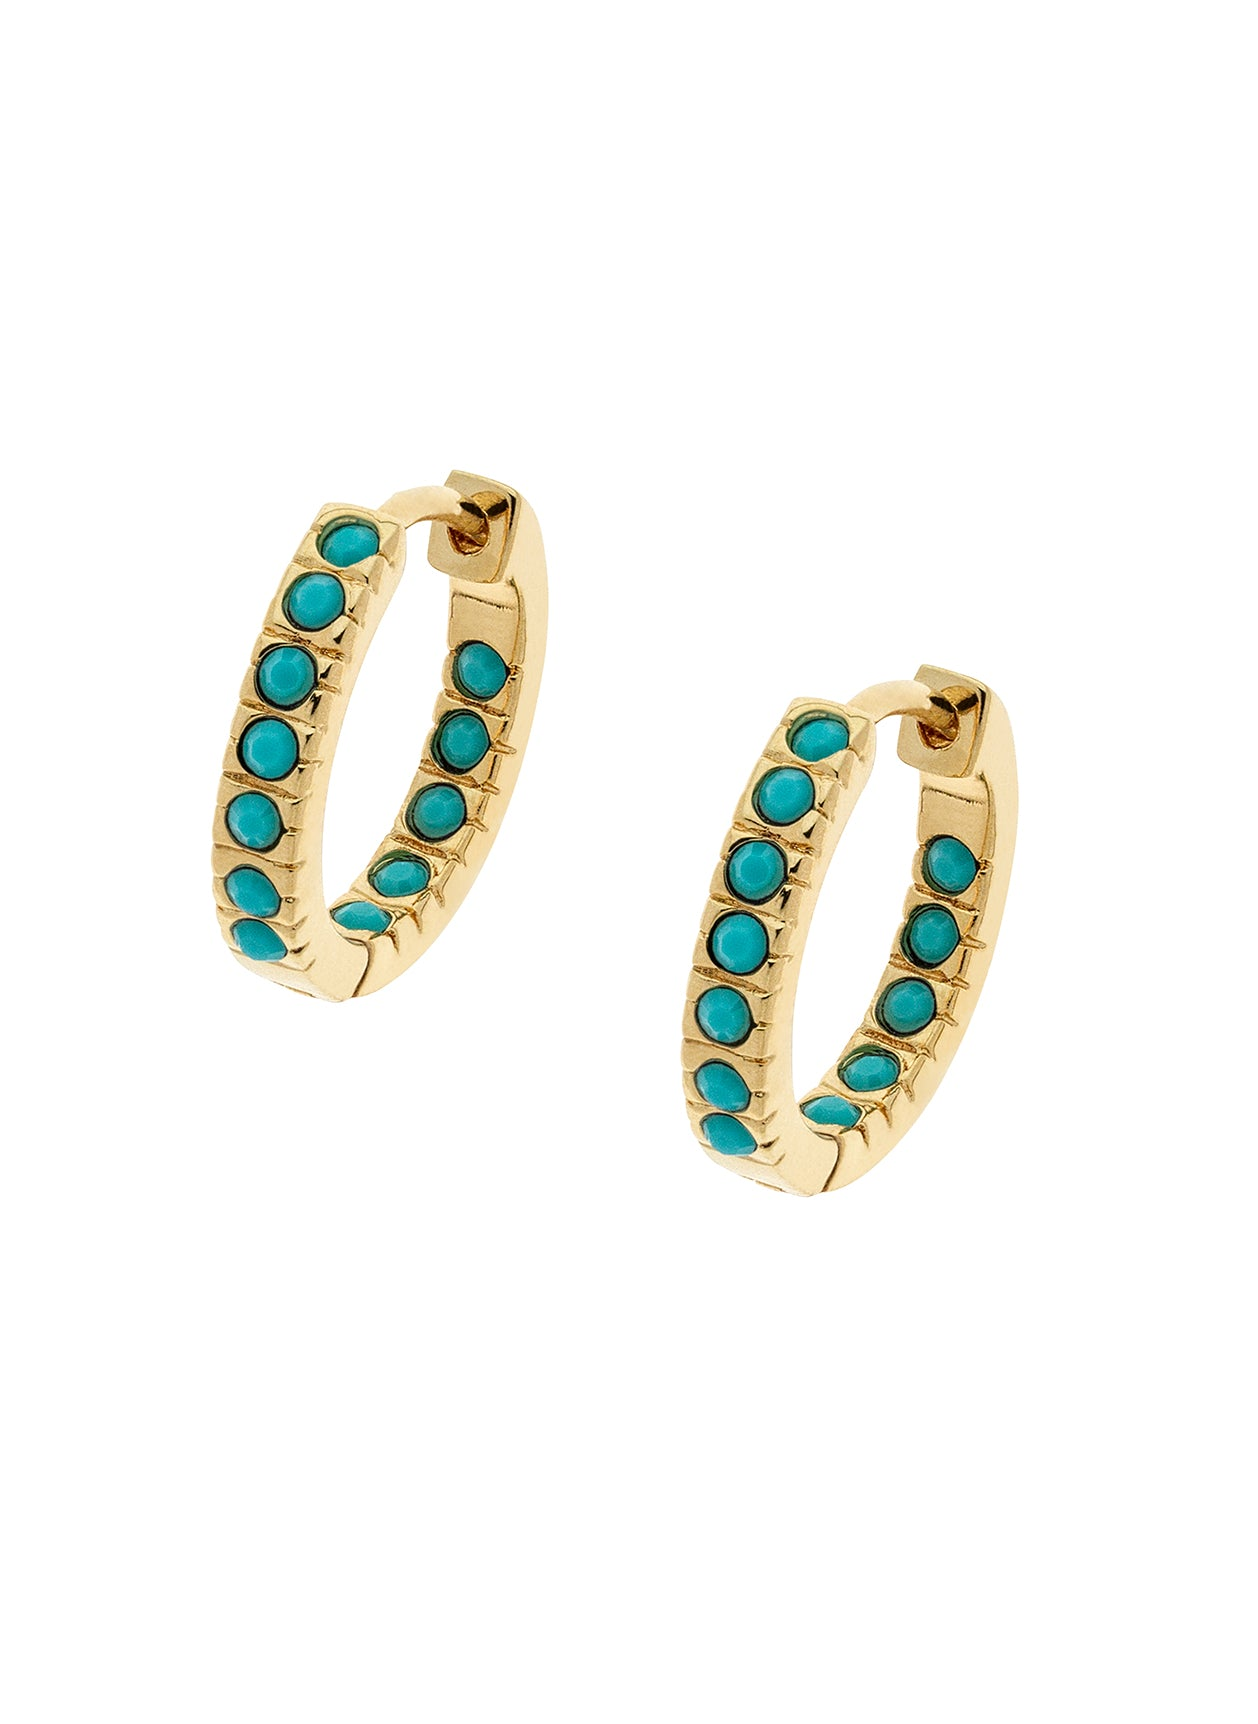 Turquoise Swarovski Crystal Gold Hoop Earrings